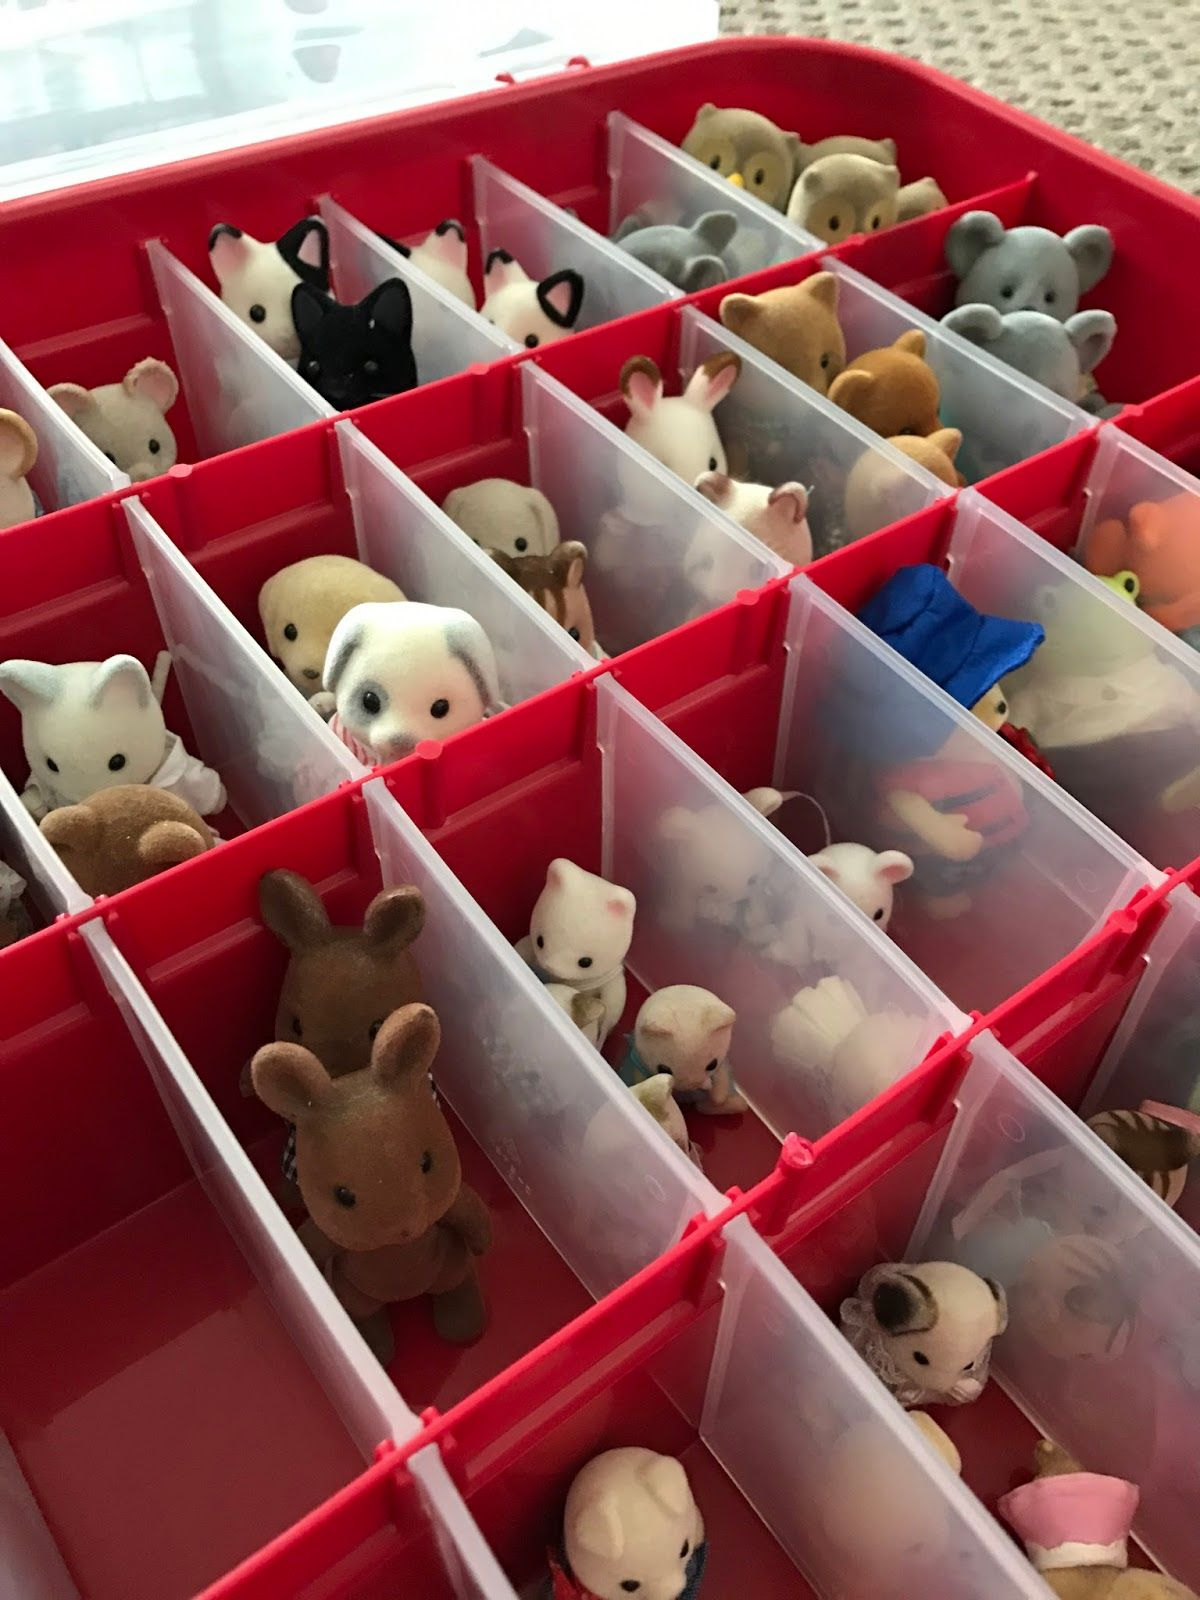 Some Great Ideas For Storing Calico Critters As Well As A